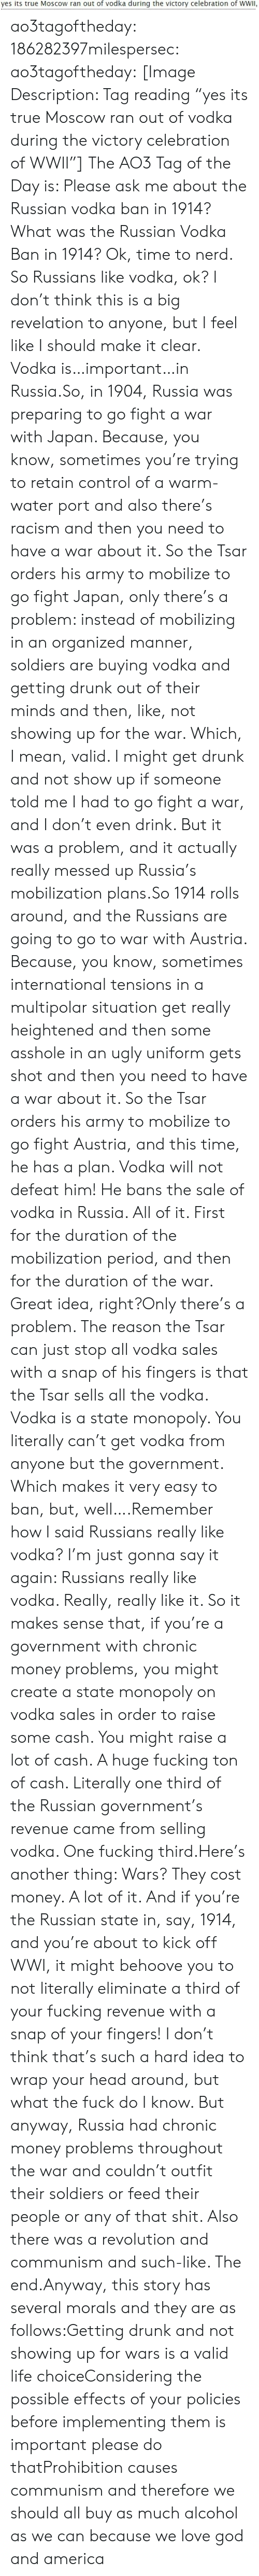 "period: yes its true Moscow ran out of vodka during the victory celebration of WWII, ao3tagoftheday:  186282397milespersec:  ao3tagoftheday:  [Image Description: Tag reading ""yes its true Moscow ran out of vodka during the victory celebration of WWII""]  The AO3 Tag of the Day is: Please ask me about the Russian vodka ban in 1914?   What was the Russian Vodka Ban in 1914?  Ok, time to nerd. So Russians like vodka, ok? I don't think this is a big revelation to anyone, but I feel like I should make it clear. Vodka is…important…in Russia.So, in 1904, Russia was preparing to go fight a war with Japan. Because, you know, sometimes you're trying to retain control of a warm-water port and also there's racism and then you need to have a war about it. So the Tsar orders his army to mobilize to go fight Japan, only there's a problem: instead of mobilizing in an organized manner, soldiers are buying vodka and getting drunk out of their minds and then, like, not showing up for the war. Which, I mean, valid. I might get drunk and not show up if someone told me I had to go fight a war, and I don't even drink. But it was a problem, and it actually really messed up Russia's mobilization plans.So 1914 rolls around, and the Russians are going to go to war with Austria. Because, you know, sometimes international tensions in a multipolar situation get really heightened and then some asshole in an ugly uniform gets shot and then you need to have a war about it. So the Tsar orders his army to mobilize to go fight Austria, and this time, he has a plan. Vodka will not defeat him! He bans the sale of vodka in Russia. All of it. First for the duration of the mobilization period, and then for the duration of the war. Great idea, right?Only there's a problem. The reason the Tsar can just stop all vodka sales with a snap of his fingers is that the Tsar sells all the vodka. Vodka is a state monopoly. You literally can't get vodka from anyone but the government. Which makes it very easy to ban, but, well….Remember how I said Russians really like vodka? I'm just gonna say it again: Russians really like vodka. Really, really like it. So it makes sense that, if you're a government with chronic money problems, you might create a state monopoly on vodka sales in order to raise some cash. You might raise a lot of cash. A huge fucking ton of cash. Literally one third of the Russian government's revenue came from selling vodka. One fucking third.Here's another thing: Wars? They cost money. A lot of it. And if you're the Russian state in, say, 1914, and you're about to kick off WWI, it might behoove you to not literally eliminate a third of your fucking revenue with a snap of your fingers! I don't think that's such a hard idea to wrap your head around, but what the fuck do I know. But anyway, Russia had chronic money problems throughout the war and couldn't outfit their soldiers or feed their people or any of that shit. Also there was a revolution and communism and such-like. The end.Anyway, this story has several morals and they are as follows:Getting drunk and not showing up for wars is a valid life choiceConsidering the possible effects of your policies before implementing them is important please do thatProhibition causes communism and therefore we should all buy as much alcohol as we can because we love god and america"